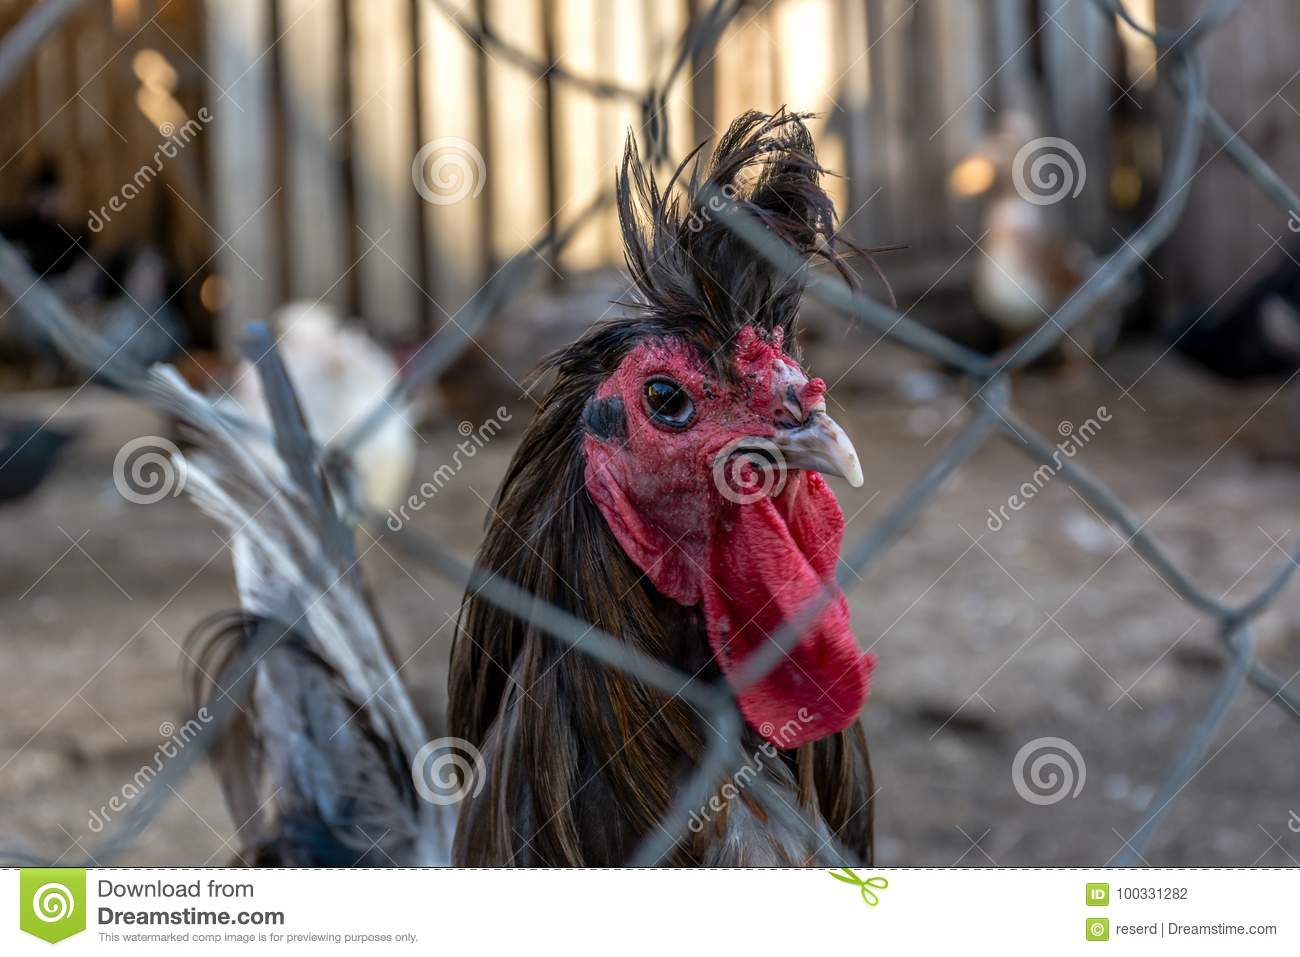 Ornamental poultry stock photo. Image of fence, agriculture - 100331282